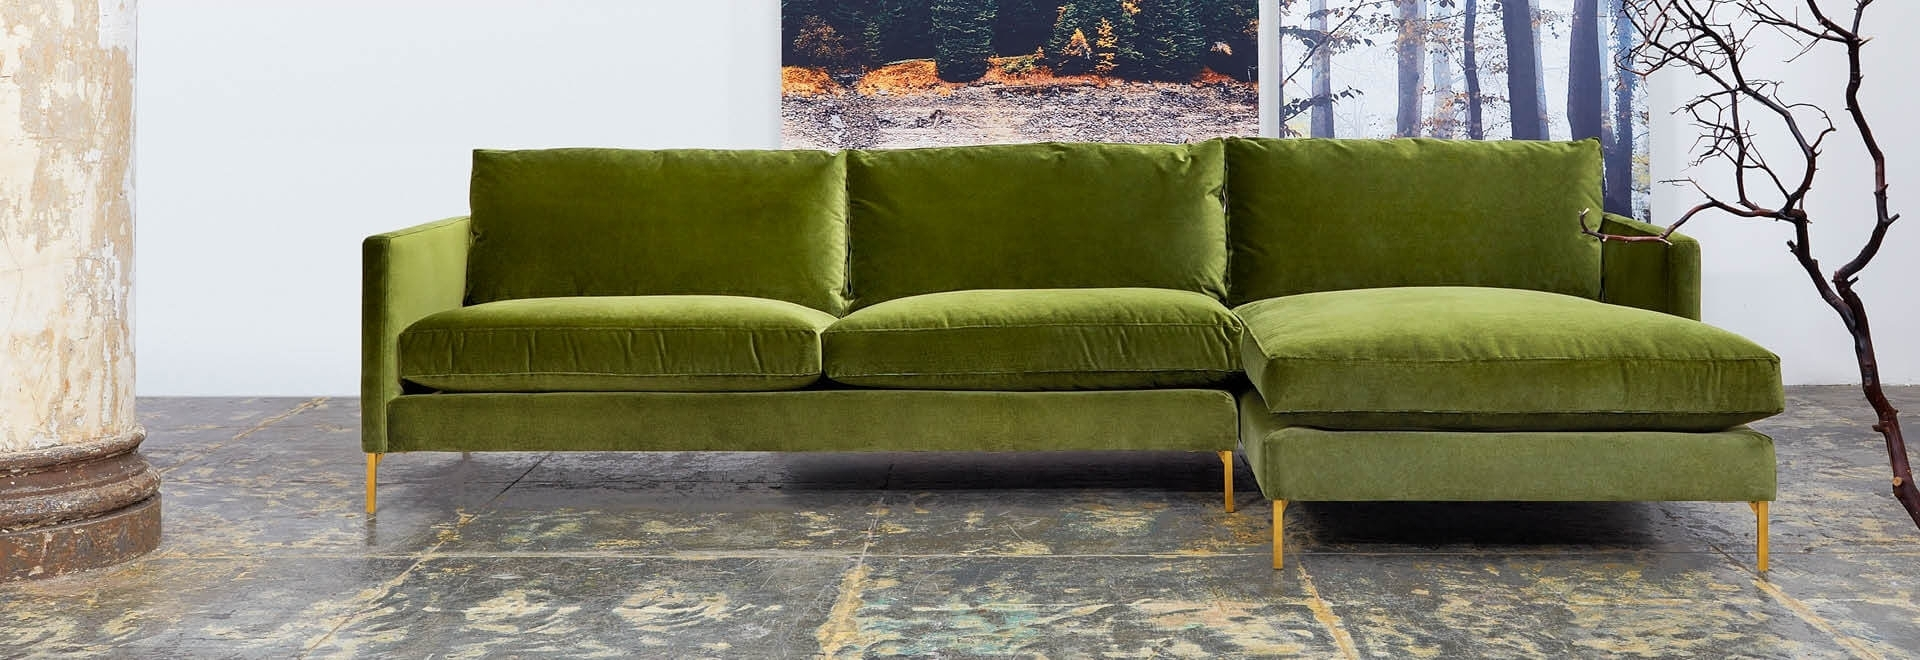 Modern Sectional Sofas For Nyc Apartments At Abc Home With Nyc Sectional Sofas (Image 6 of 10)